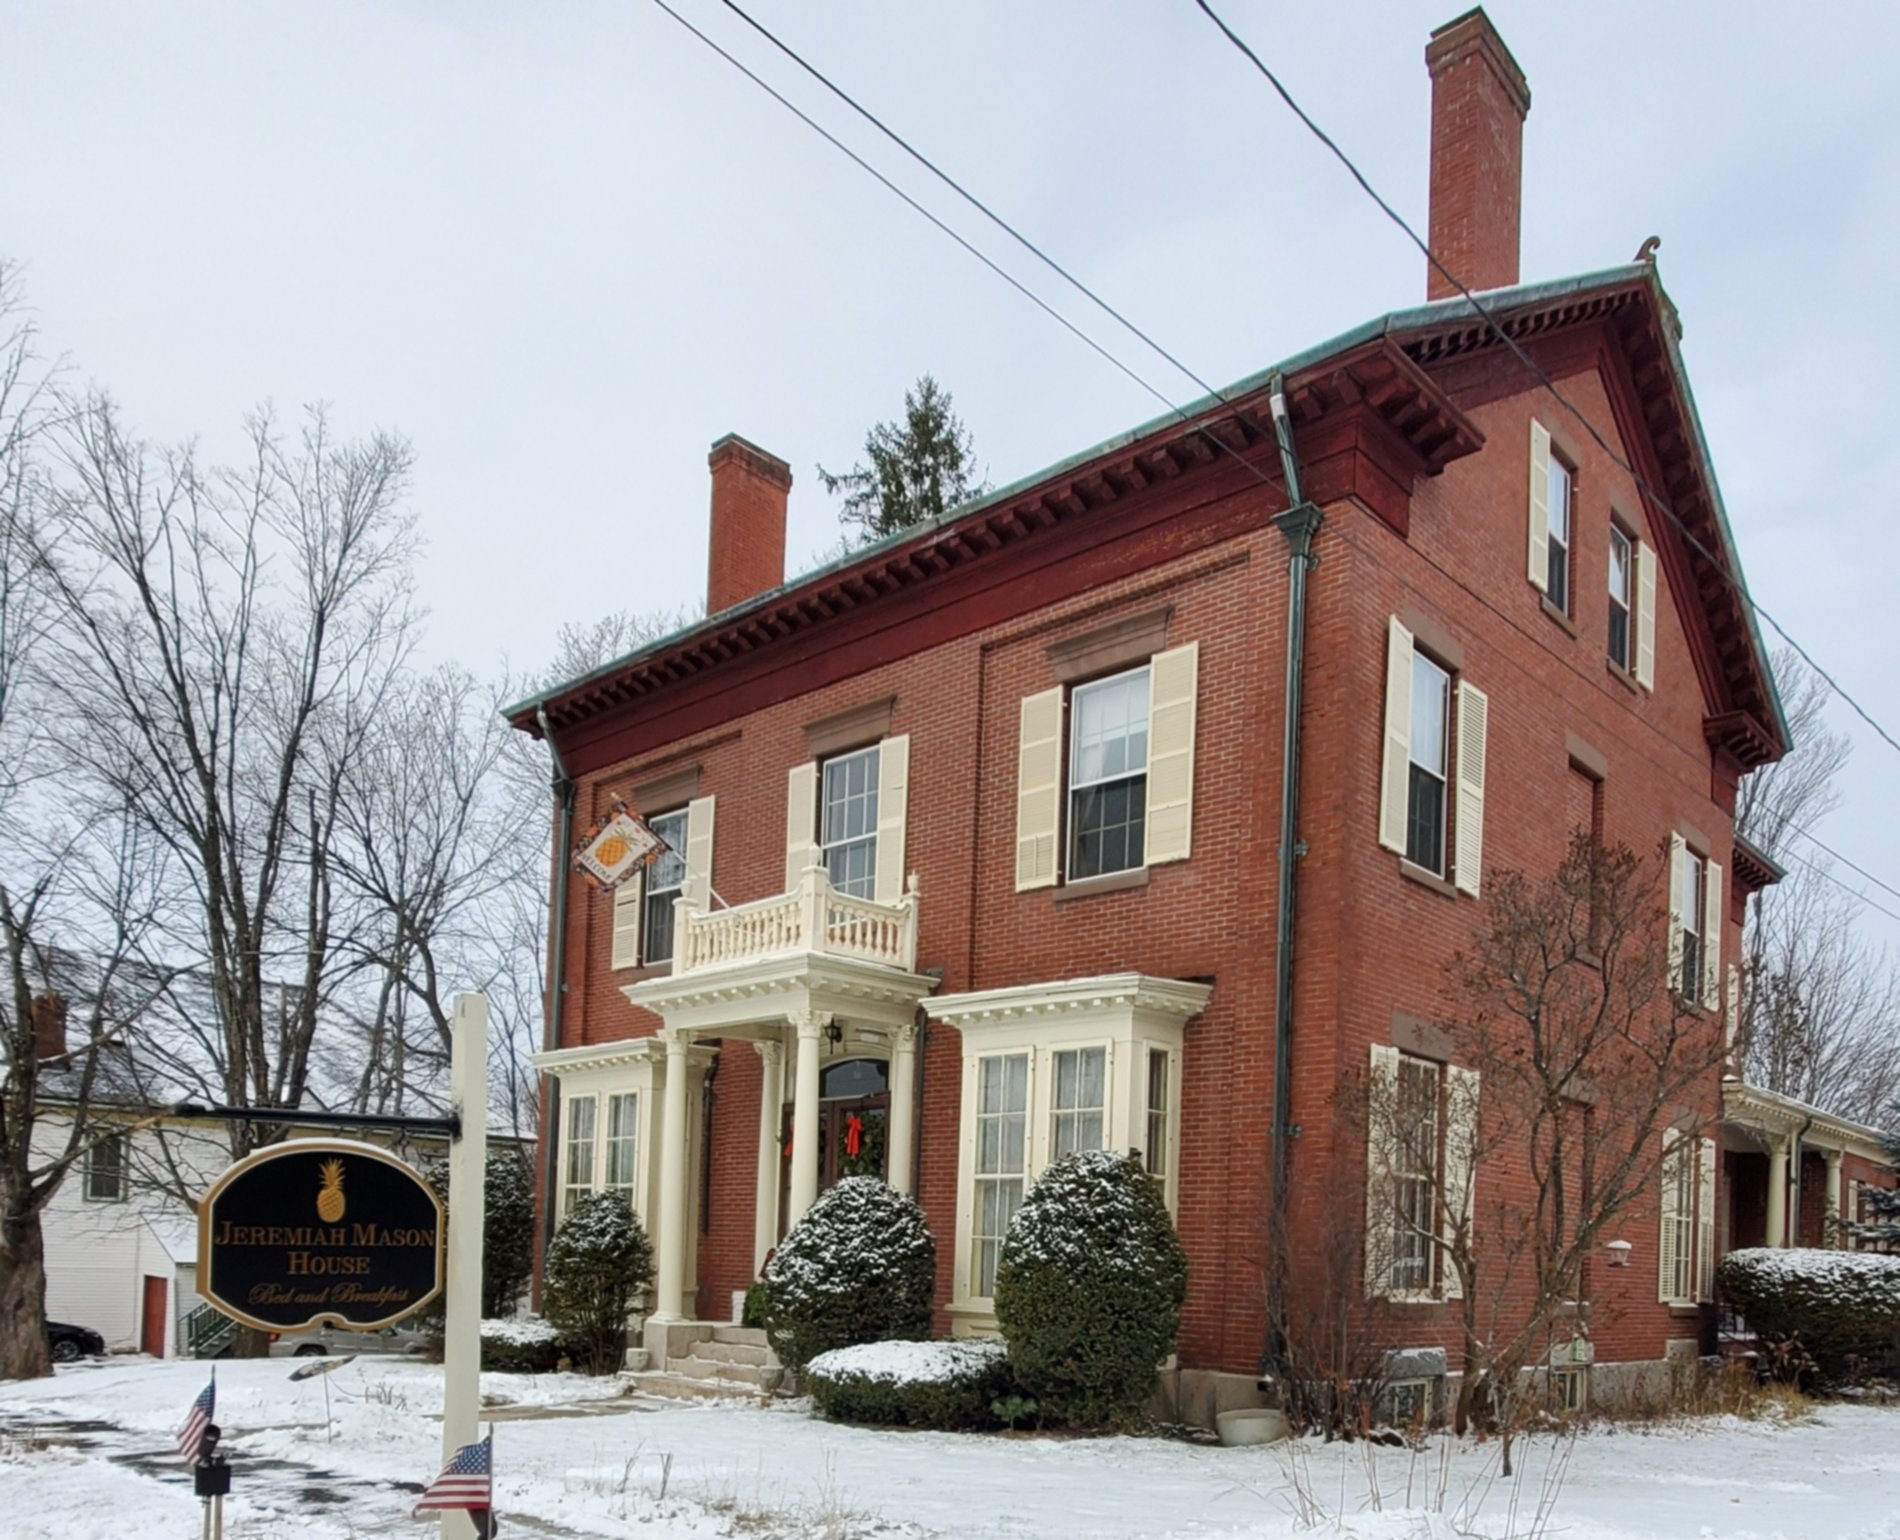 A large brick building at The Jeremiah Mason House Bed and Breakfast.